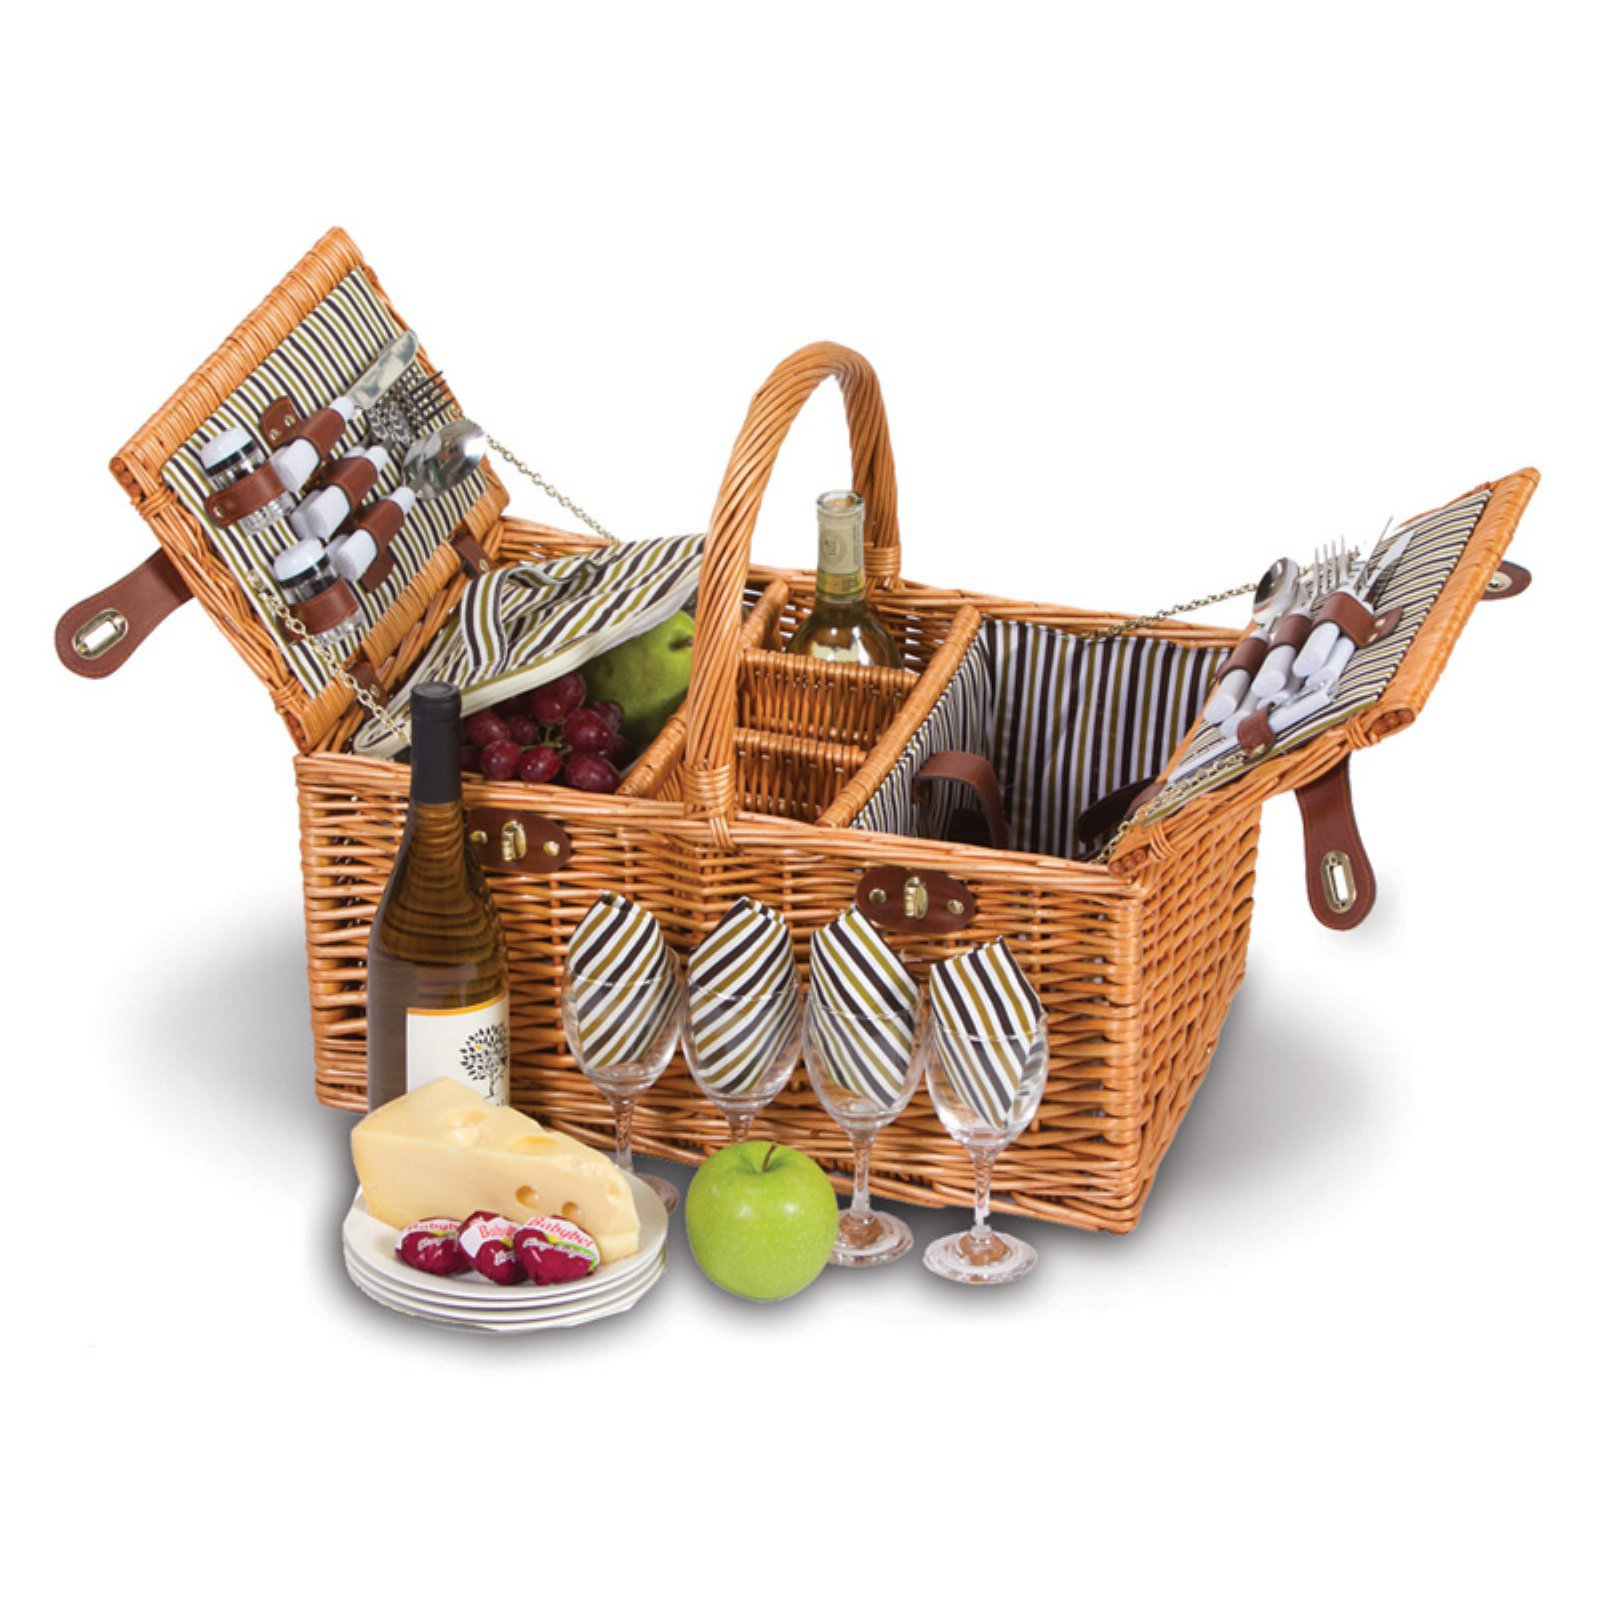 Picnic Plus Dilworth 4 Person Picnic Basket - Pinstripe Lining